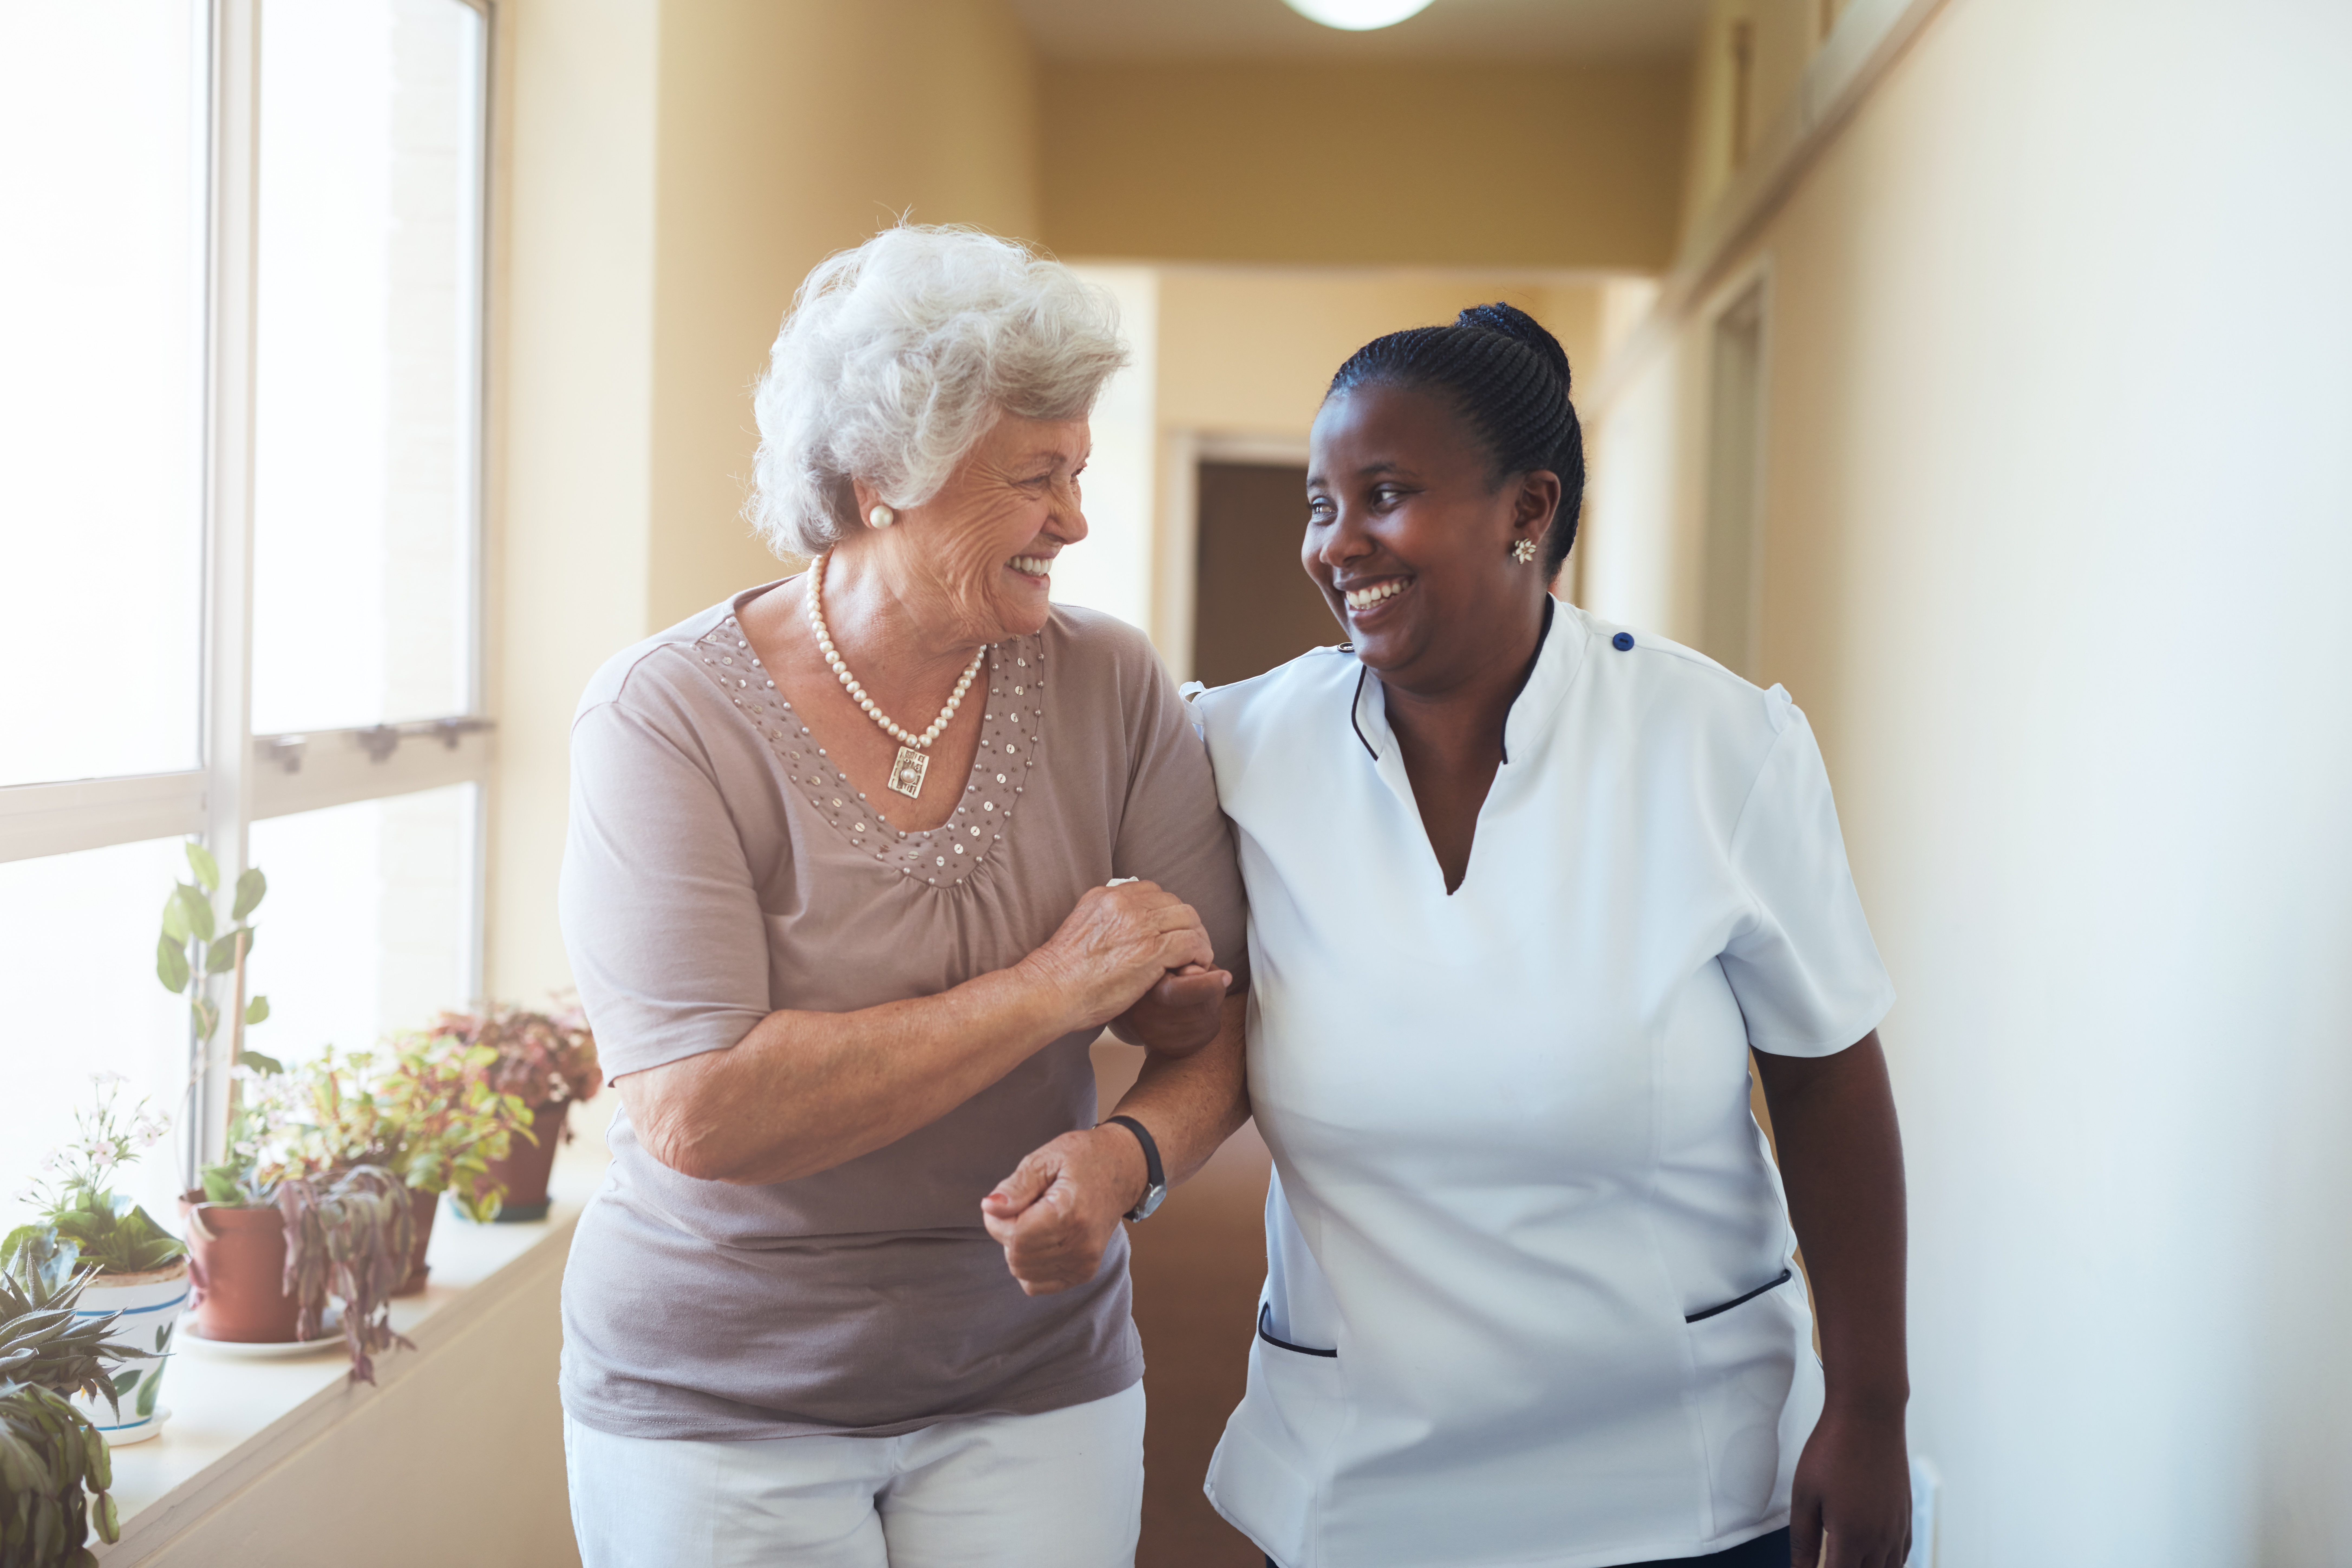 A healthcare worker escorting an older adult